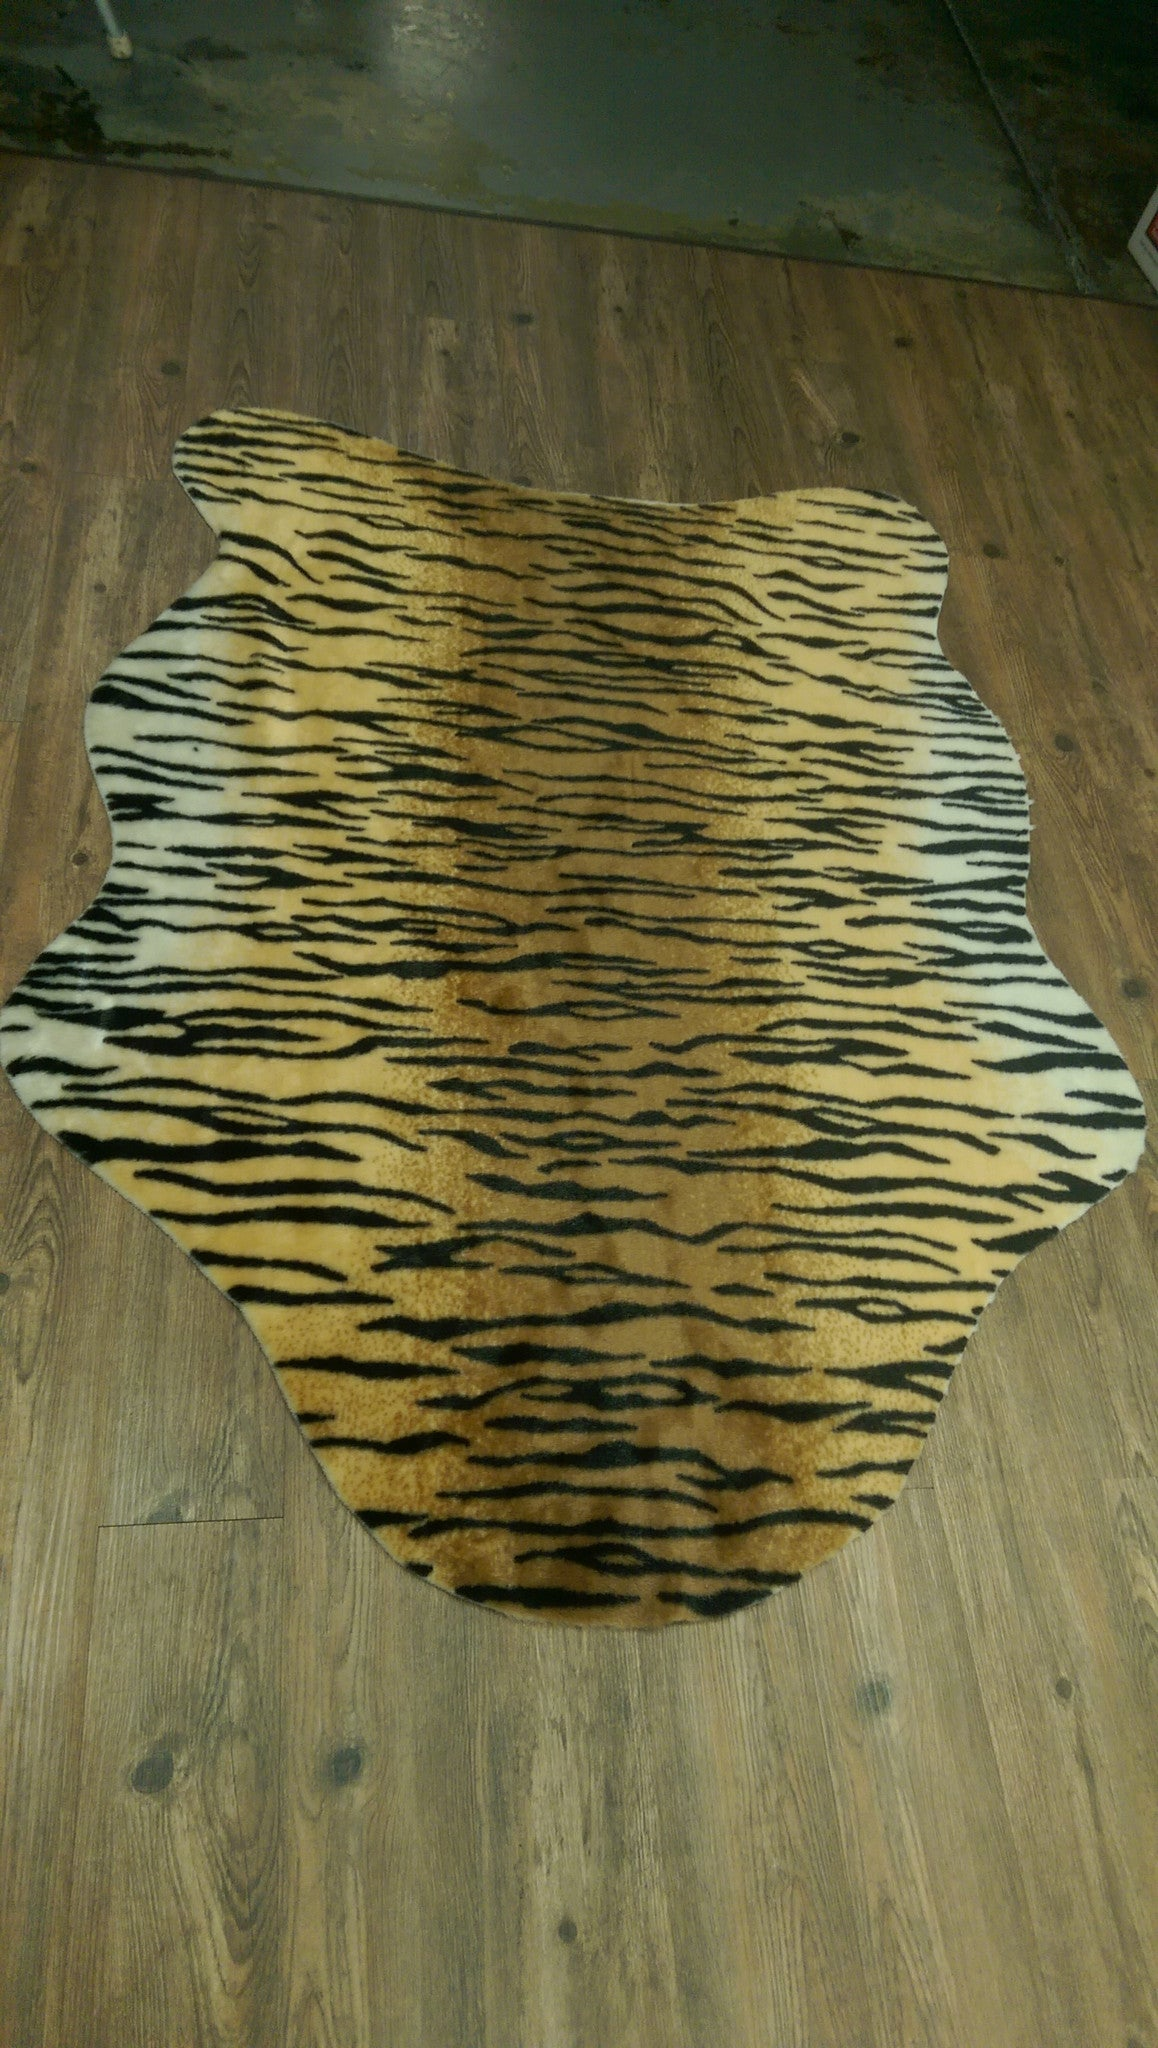 Tiger Fur Shag Rugs And Bedding Rug Addiction